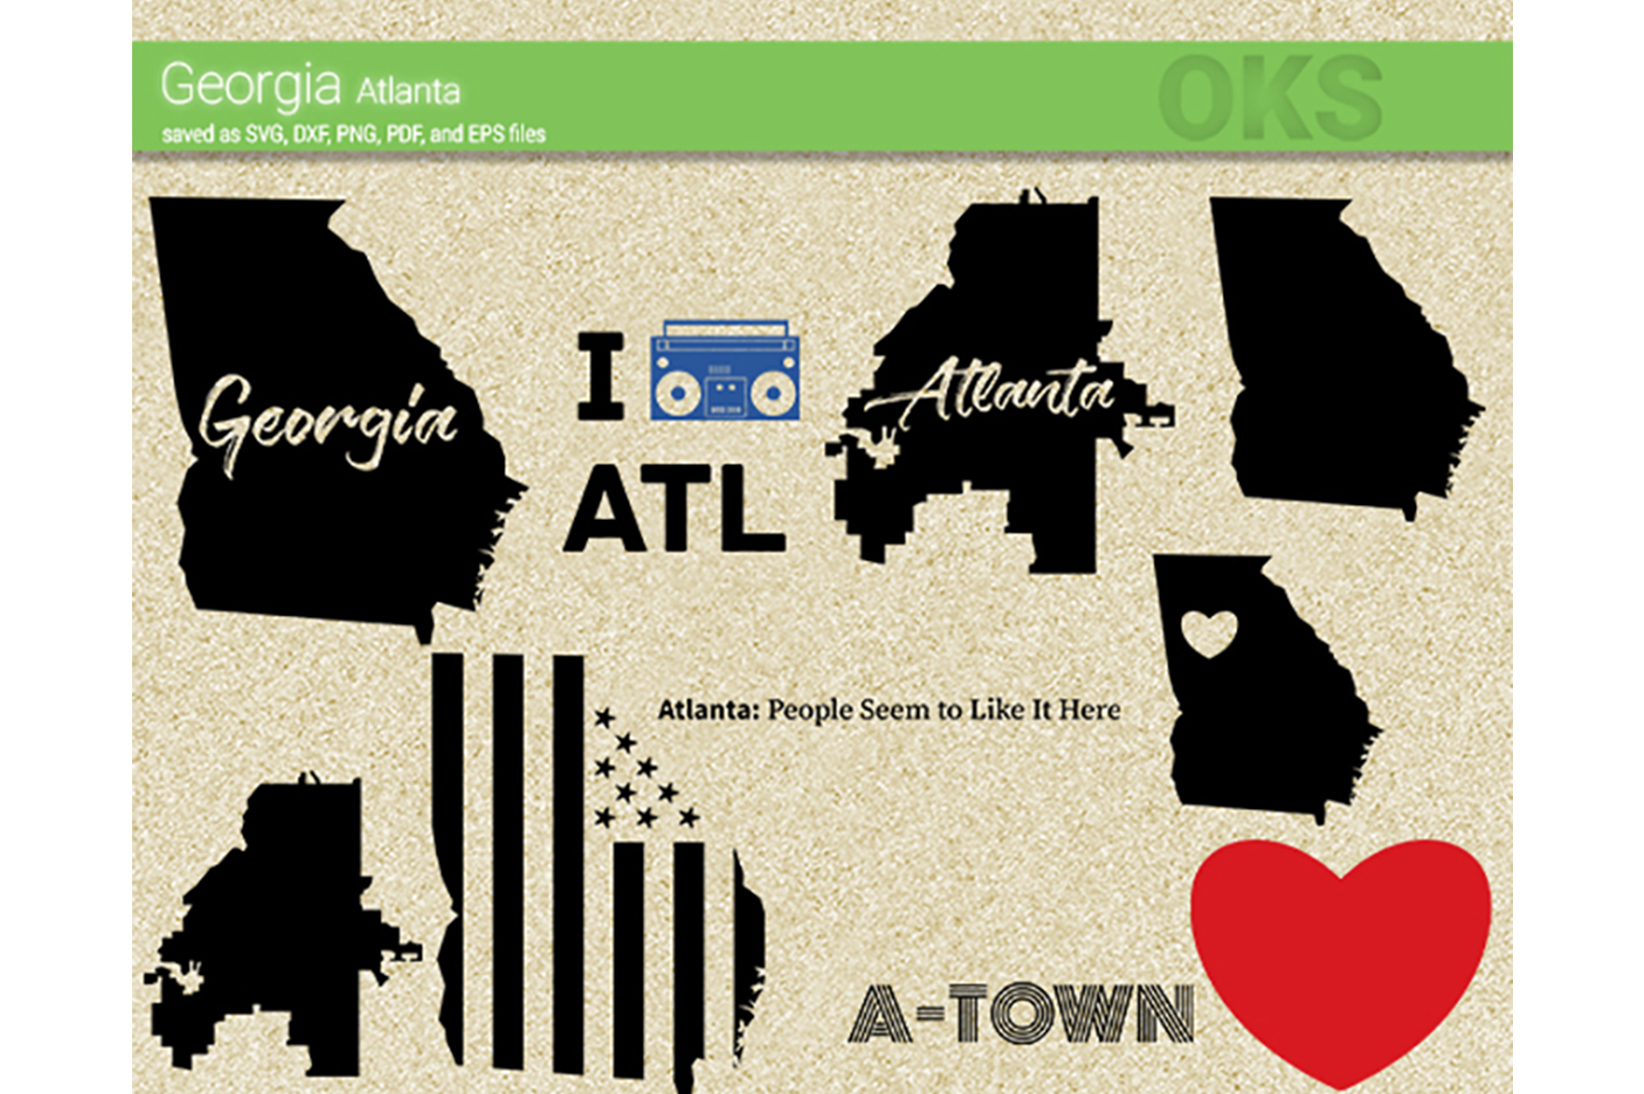 Download Free Georgia Atlanta Vector Graphic By Crafteroks Creative Fabrica for Cricut Explore, Silhouette and other cutting machines.